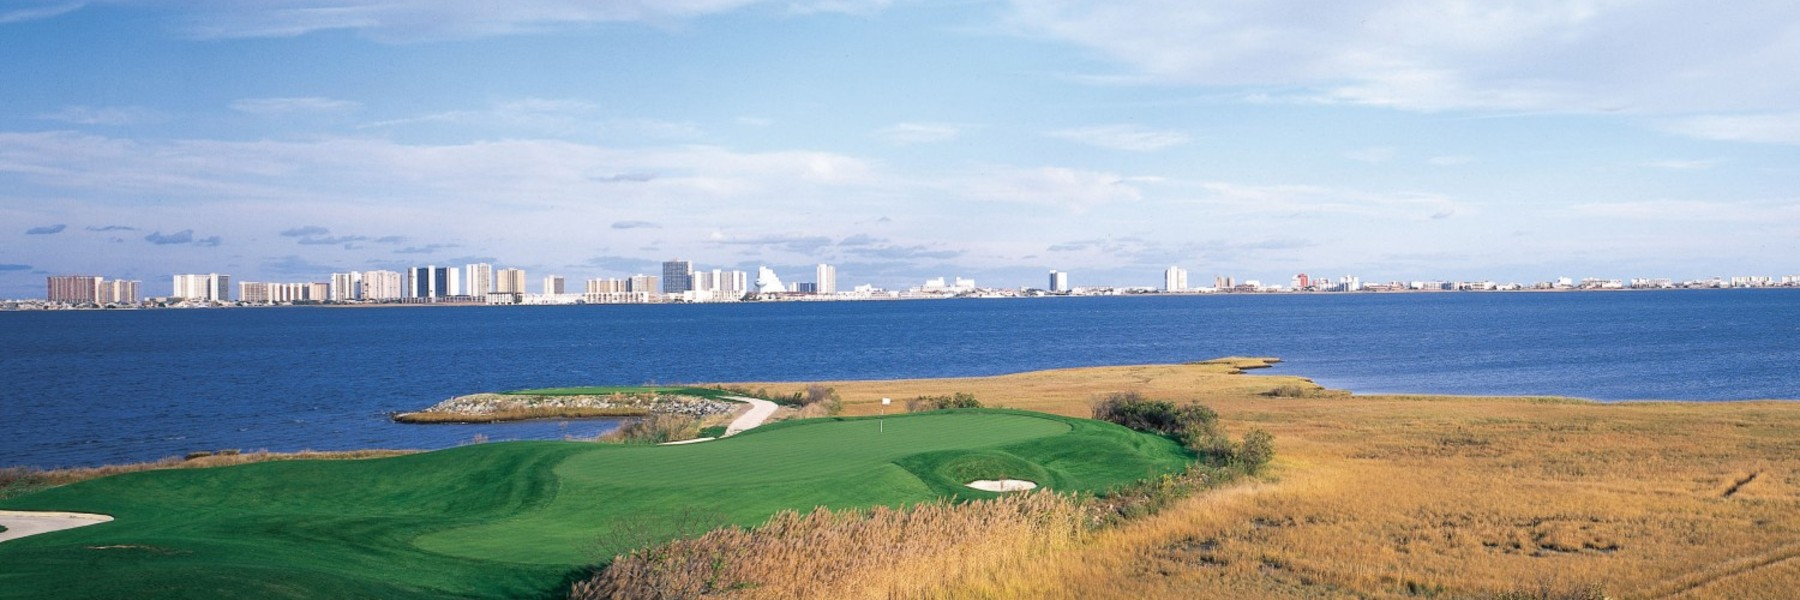 Golf Vacation Package - Triple Crown Package with Free Night in Golf Course Townhouse - For $415 TOTAL per person!